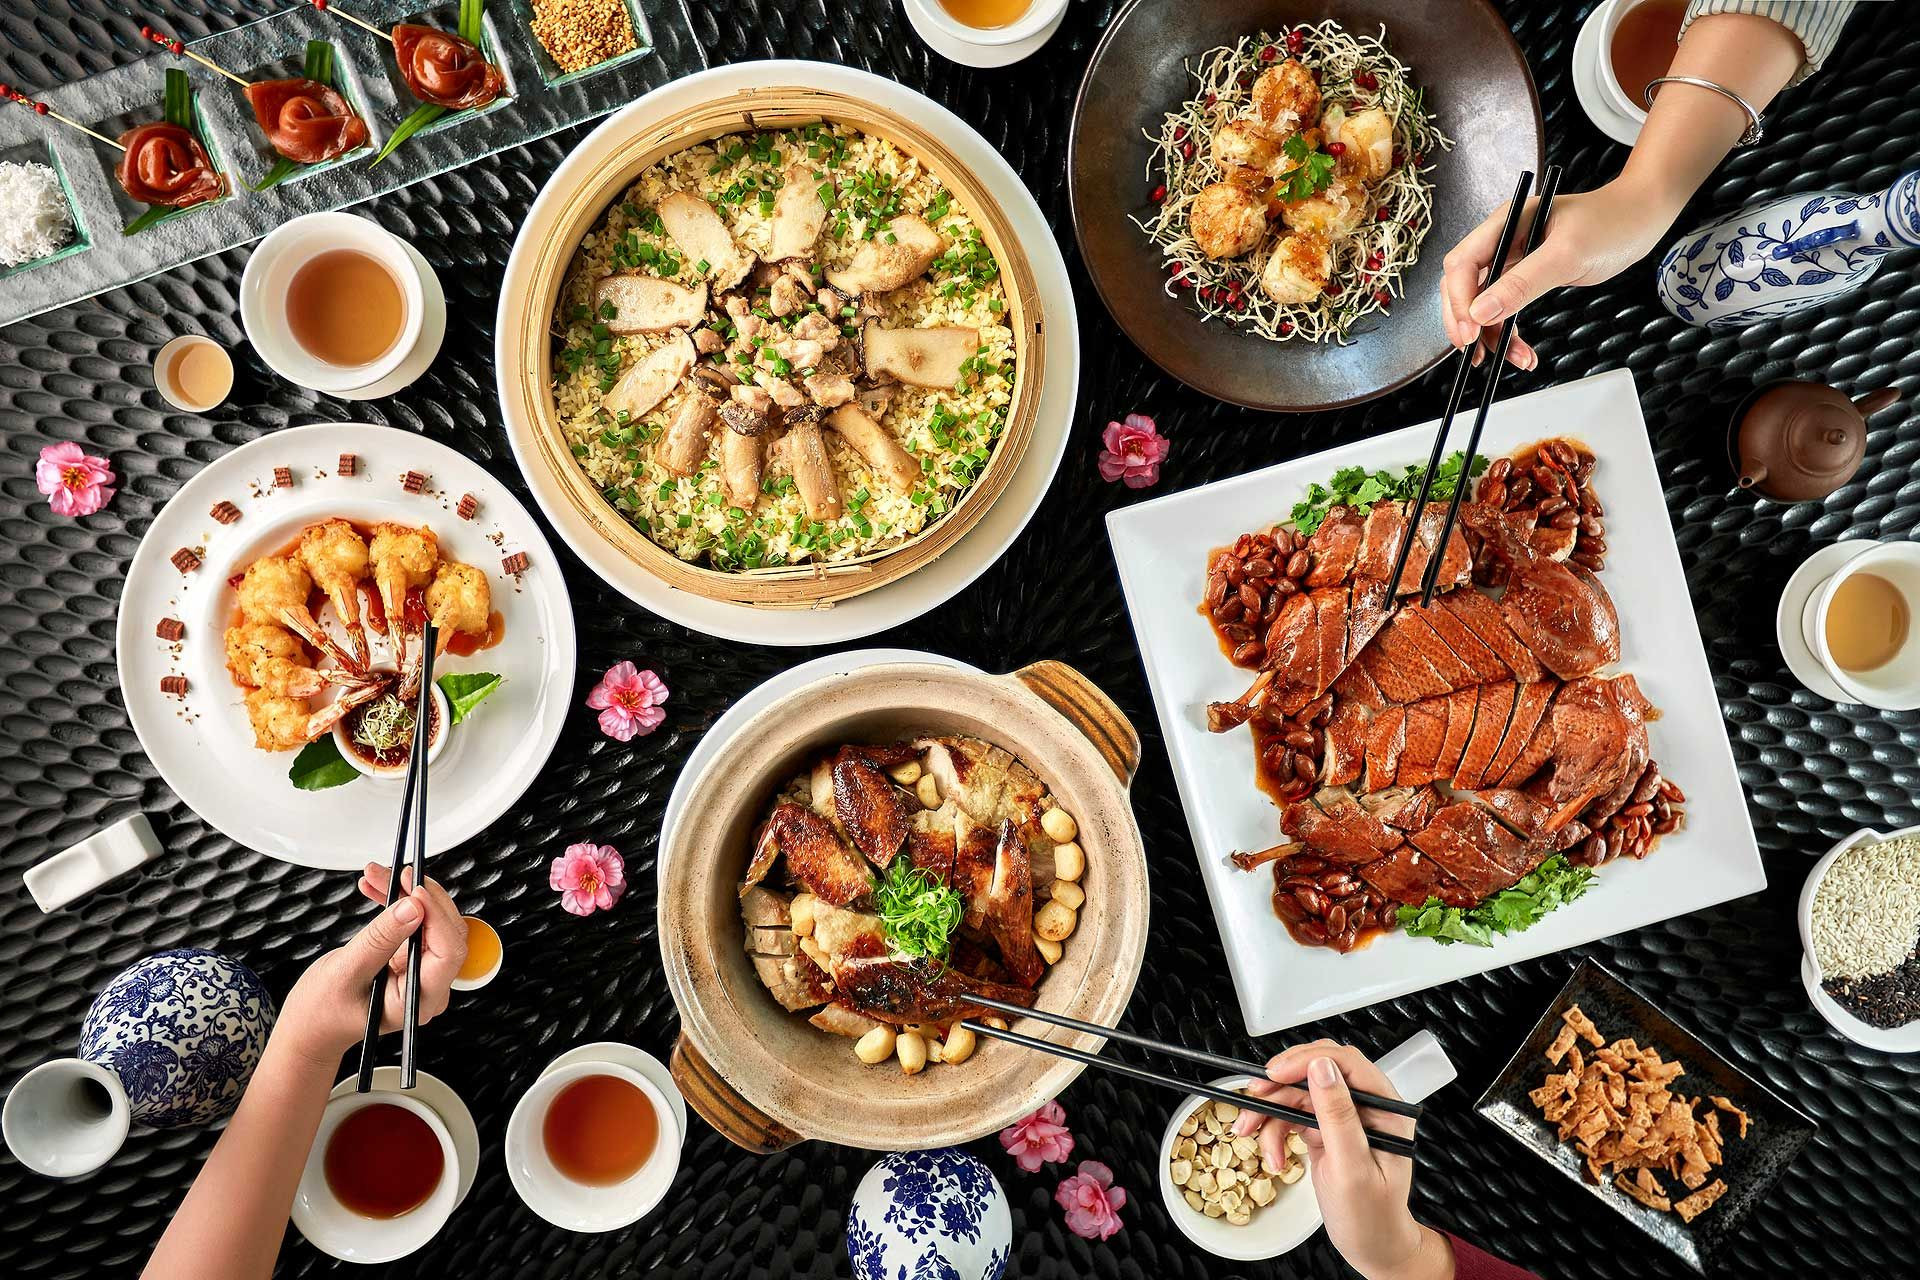 Chinese New Year Dinner  18 Places For A Delicious Chinese New Year Feast With Your